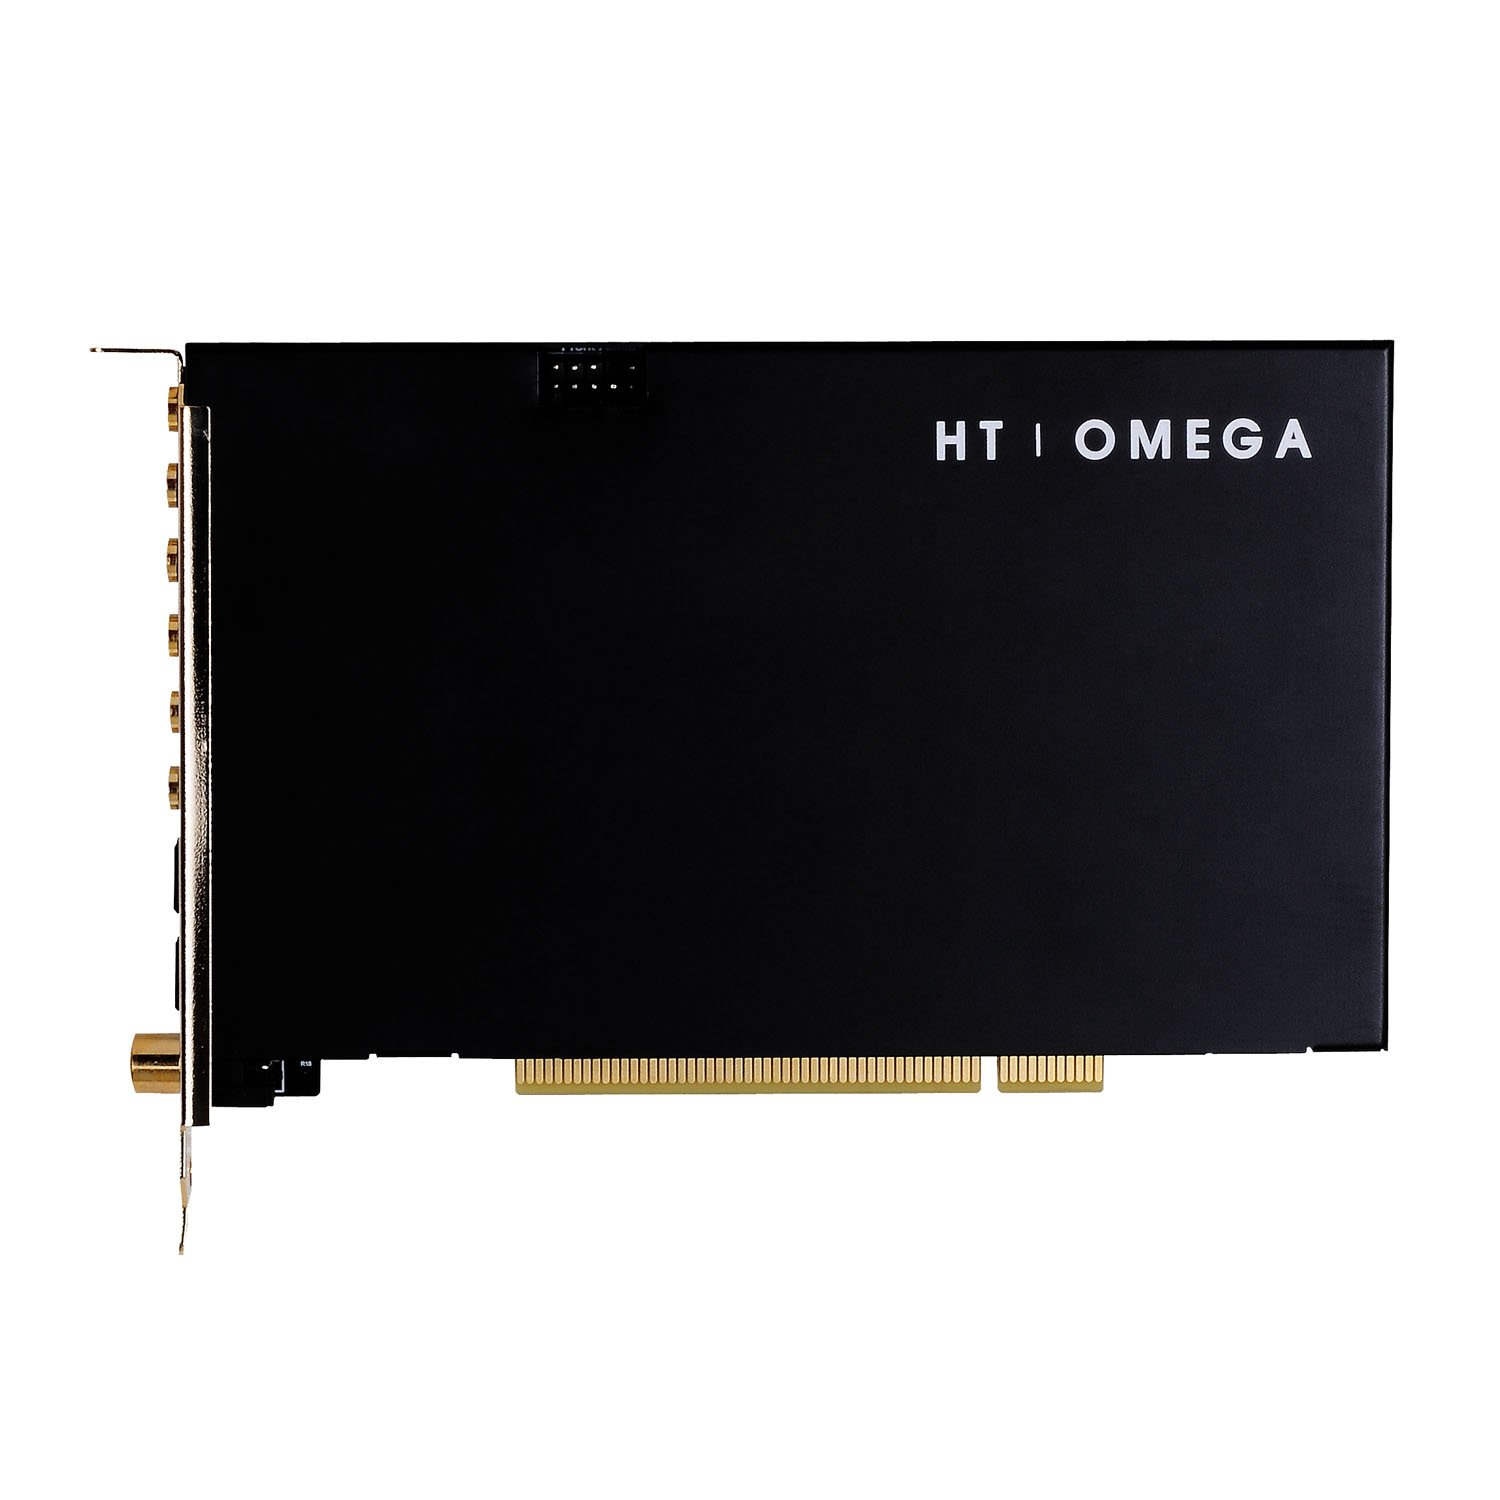 HT OMEGA CLARO II 7.1 Channel PCI Sound Card by HT OMEGA